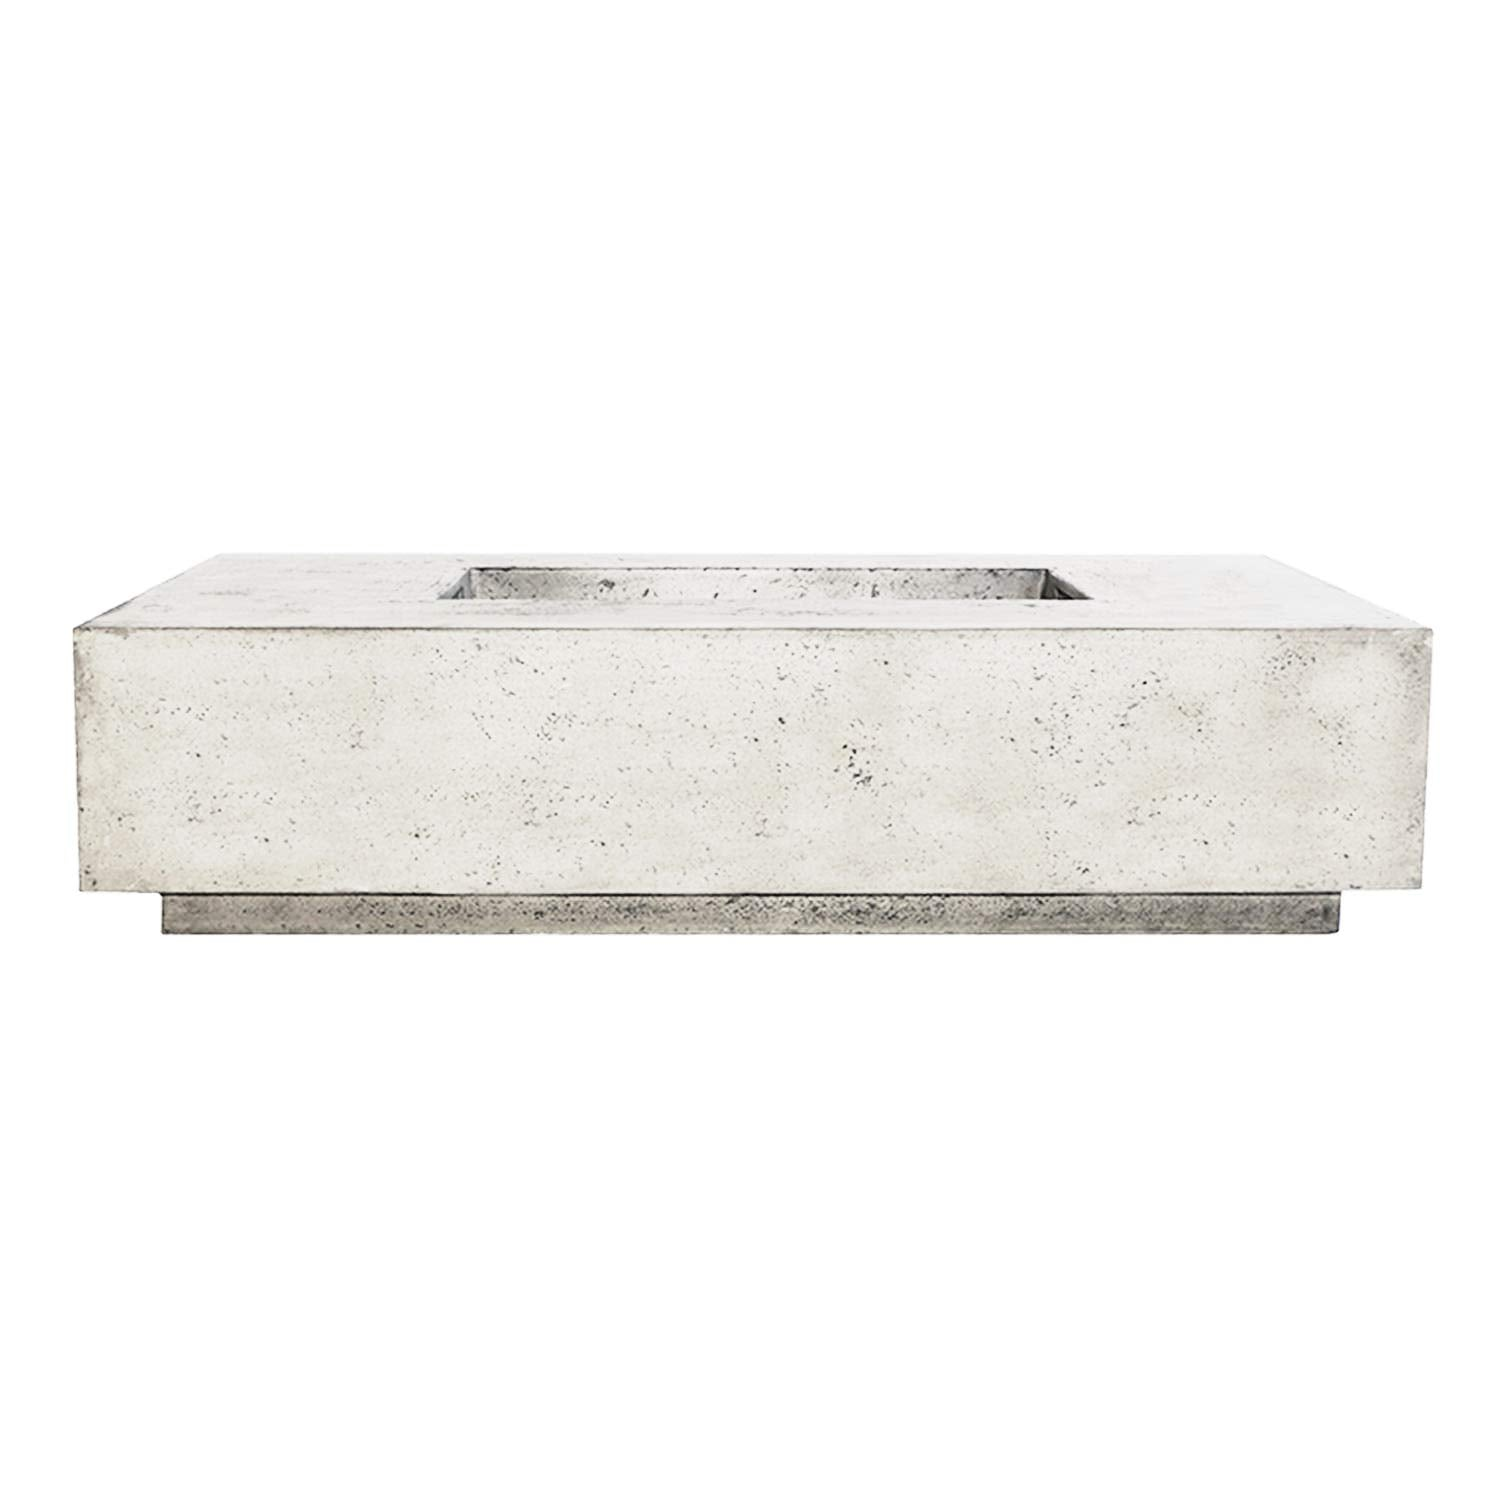 Prism Hardscapes Tavola 4 Electronic Ignition Concrete Gas Fire Pit (PH-408-5LP-WBECS), Propane, Ultra White, 66x38-Inch